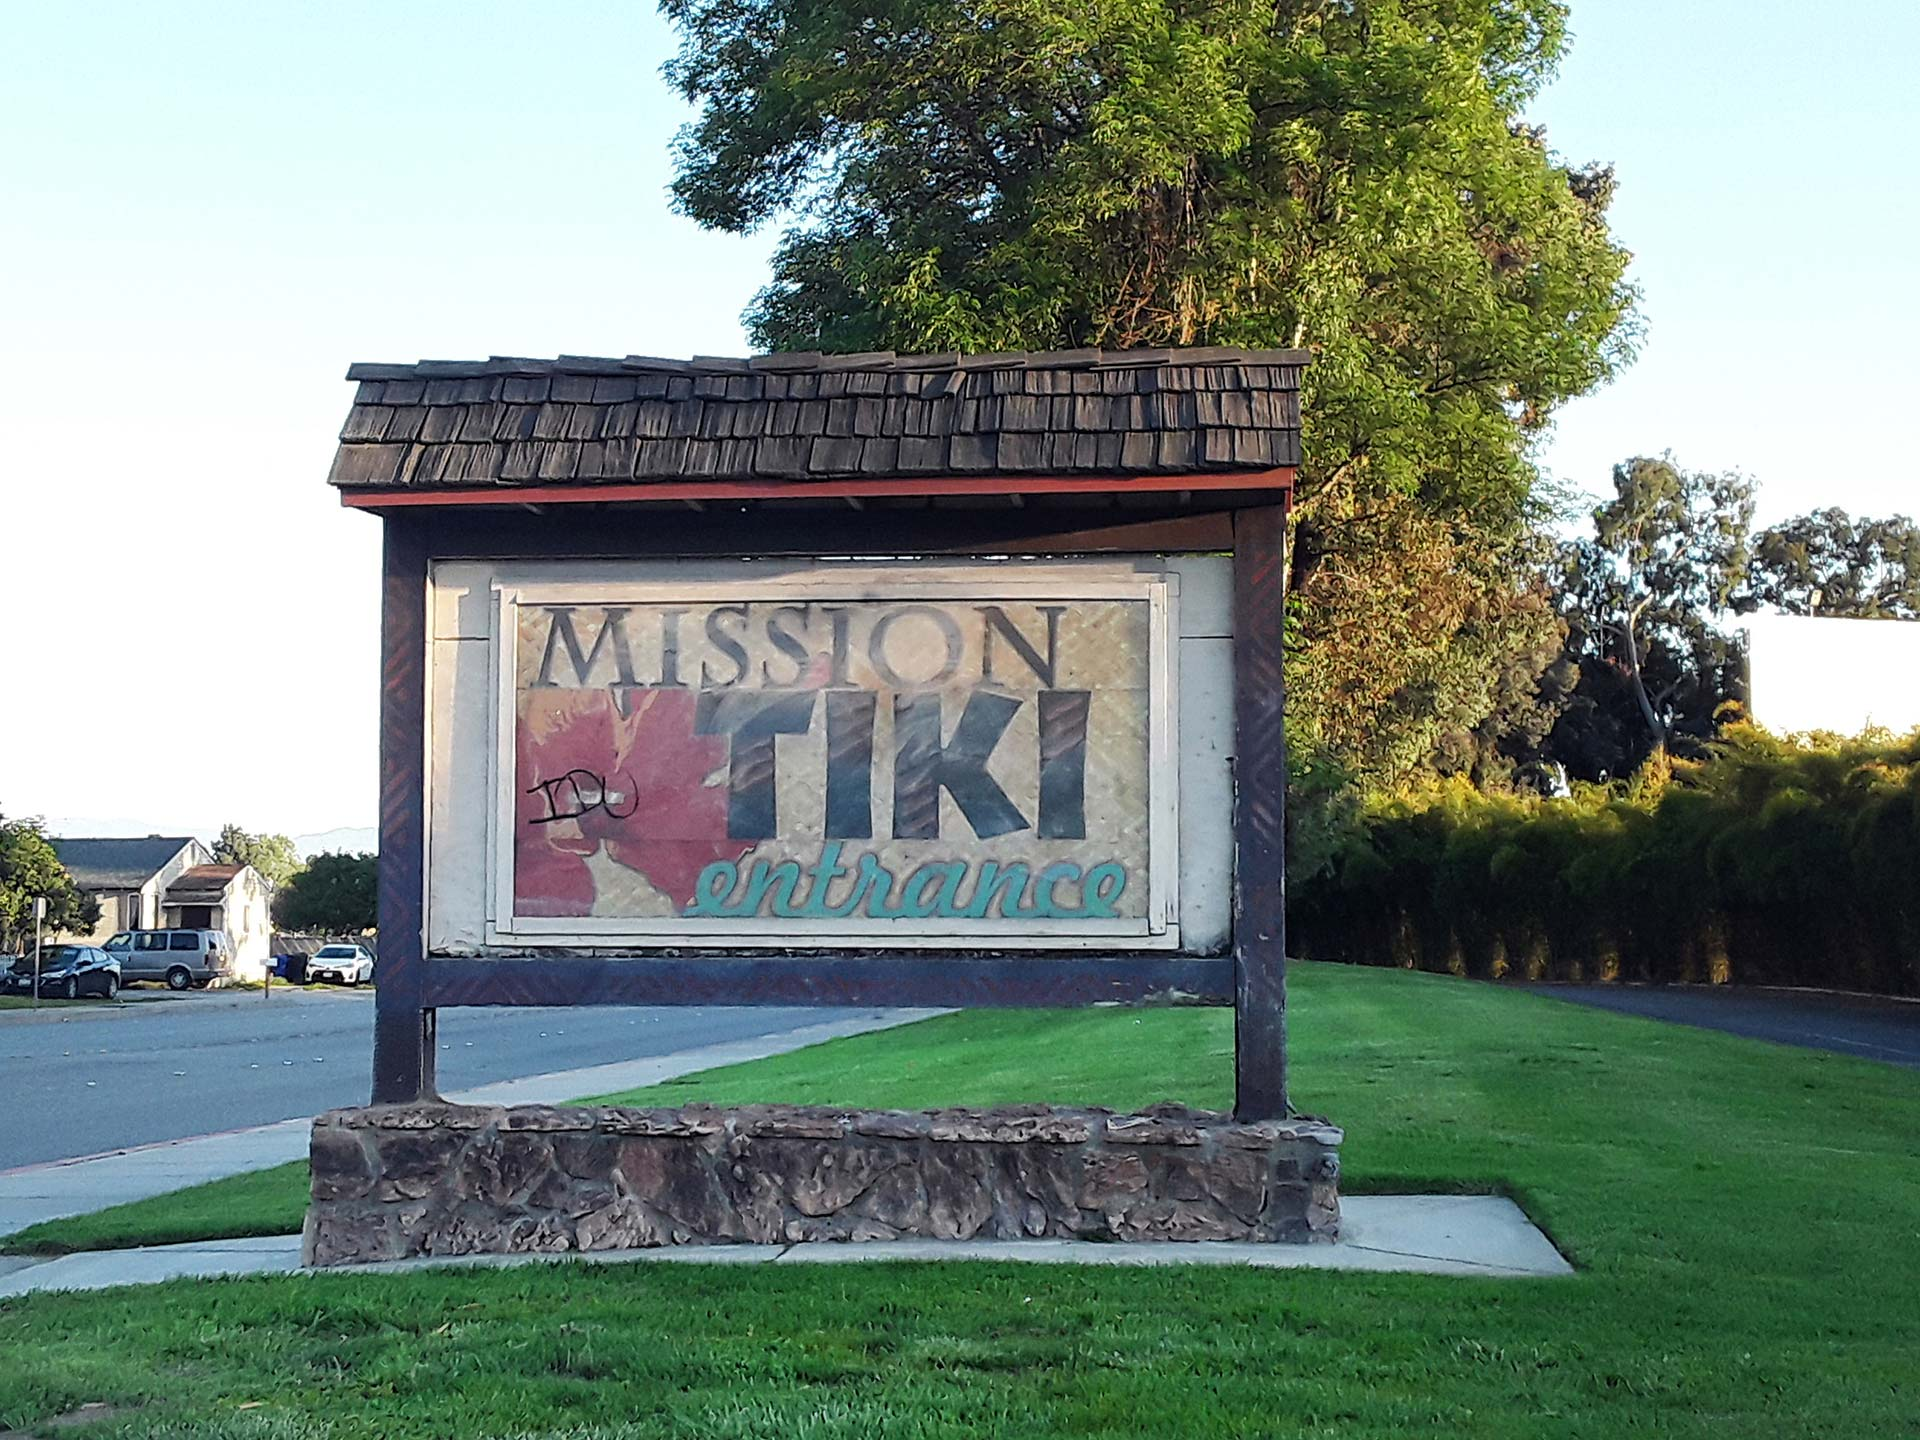 Entrance to the Mission Tiki Drive-In | Sandi Hemmerlein